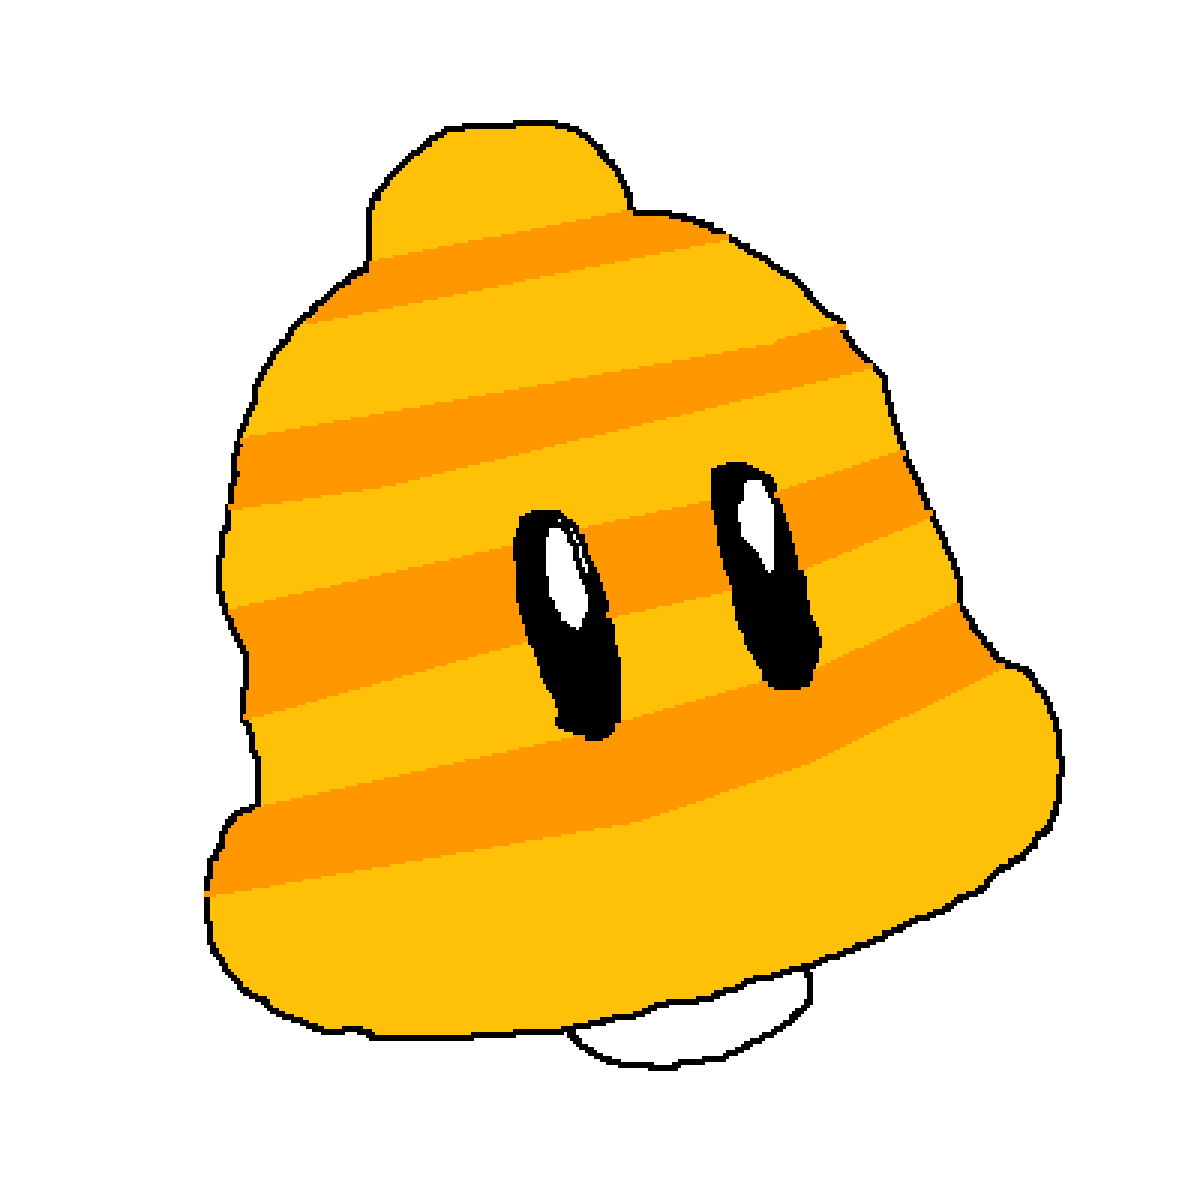 Cat bell png. Pixilart mario by beatme